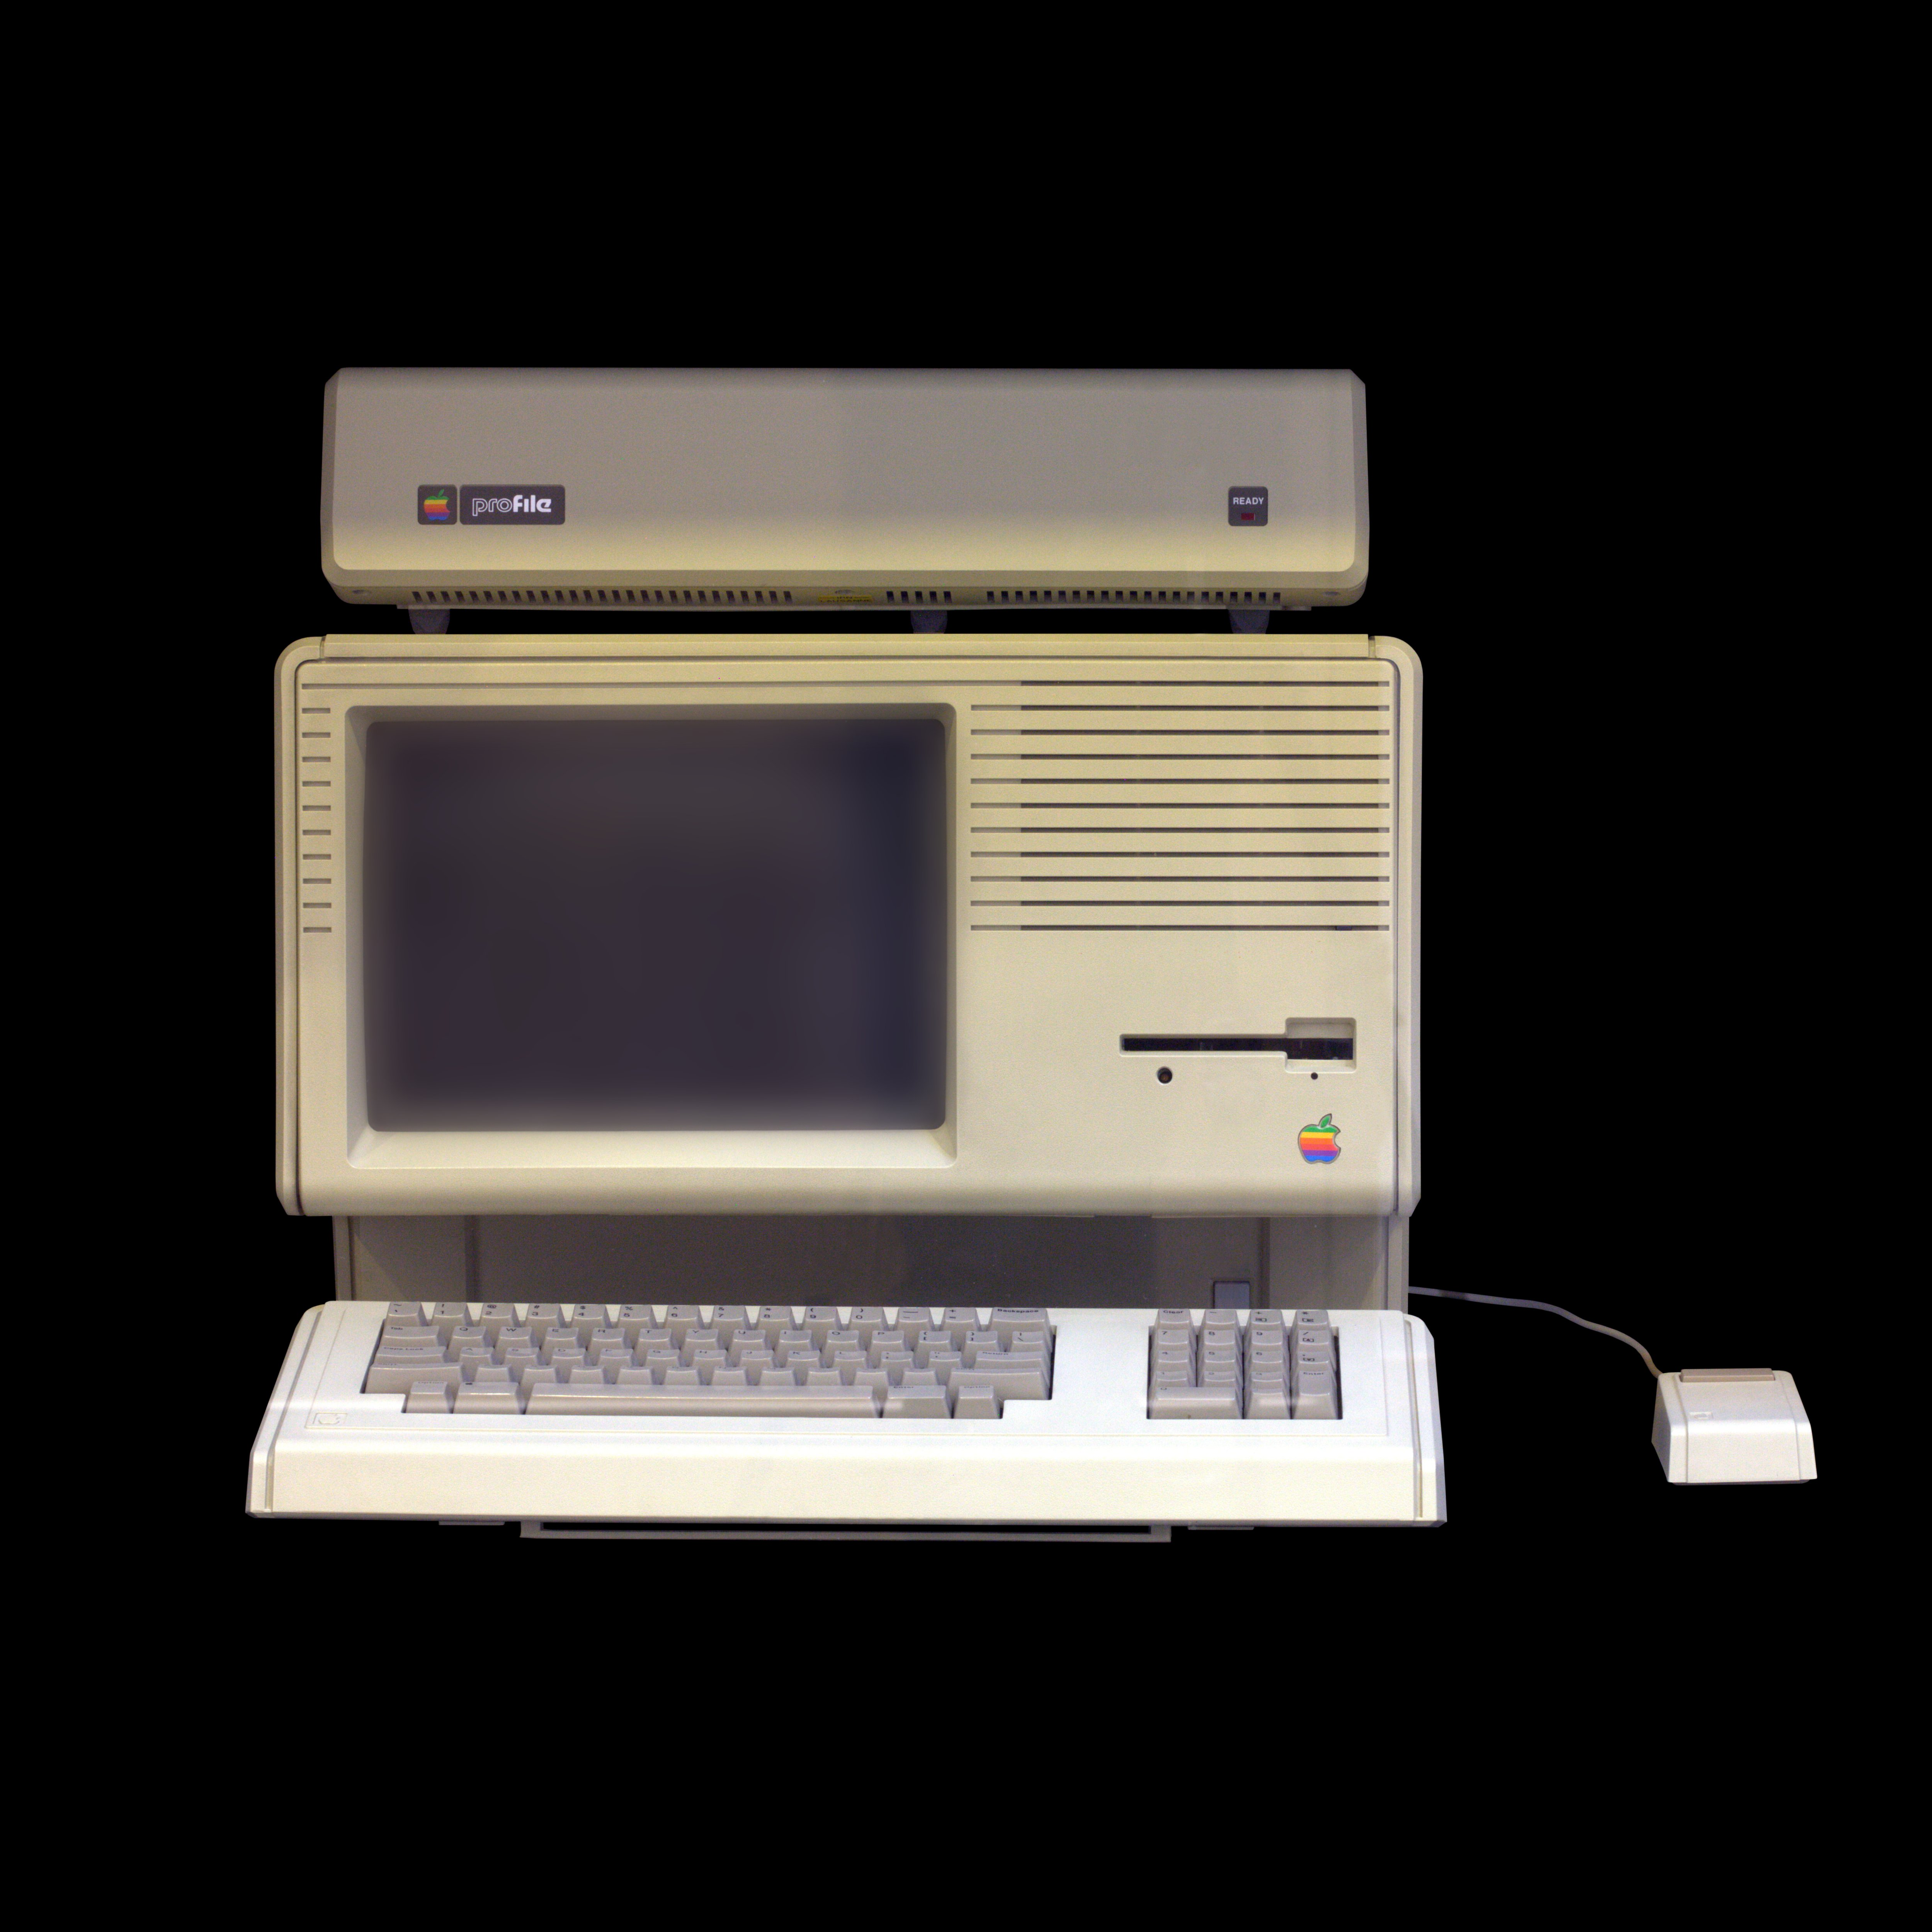 FileApple Lisa2 IMG 1517